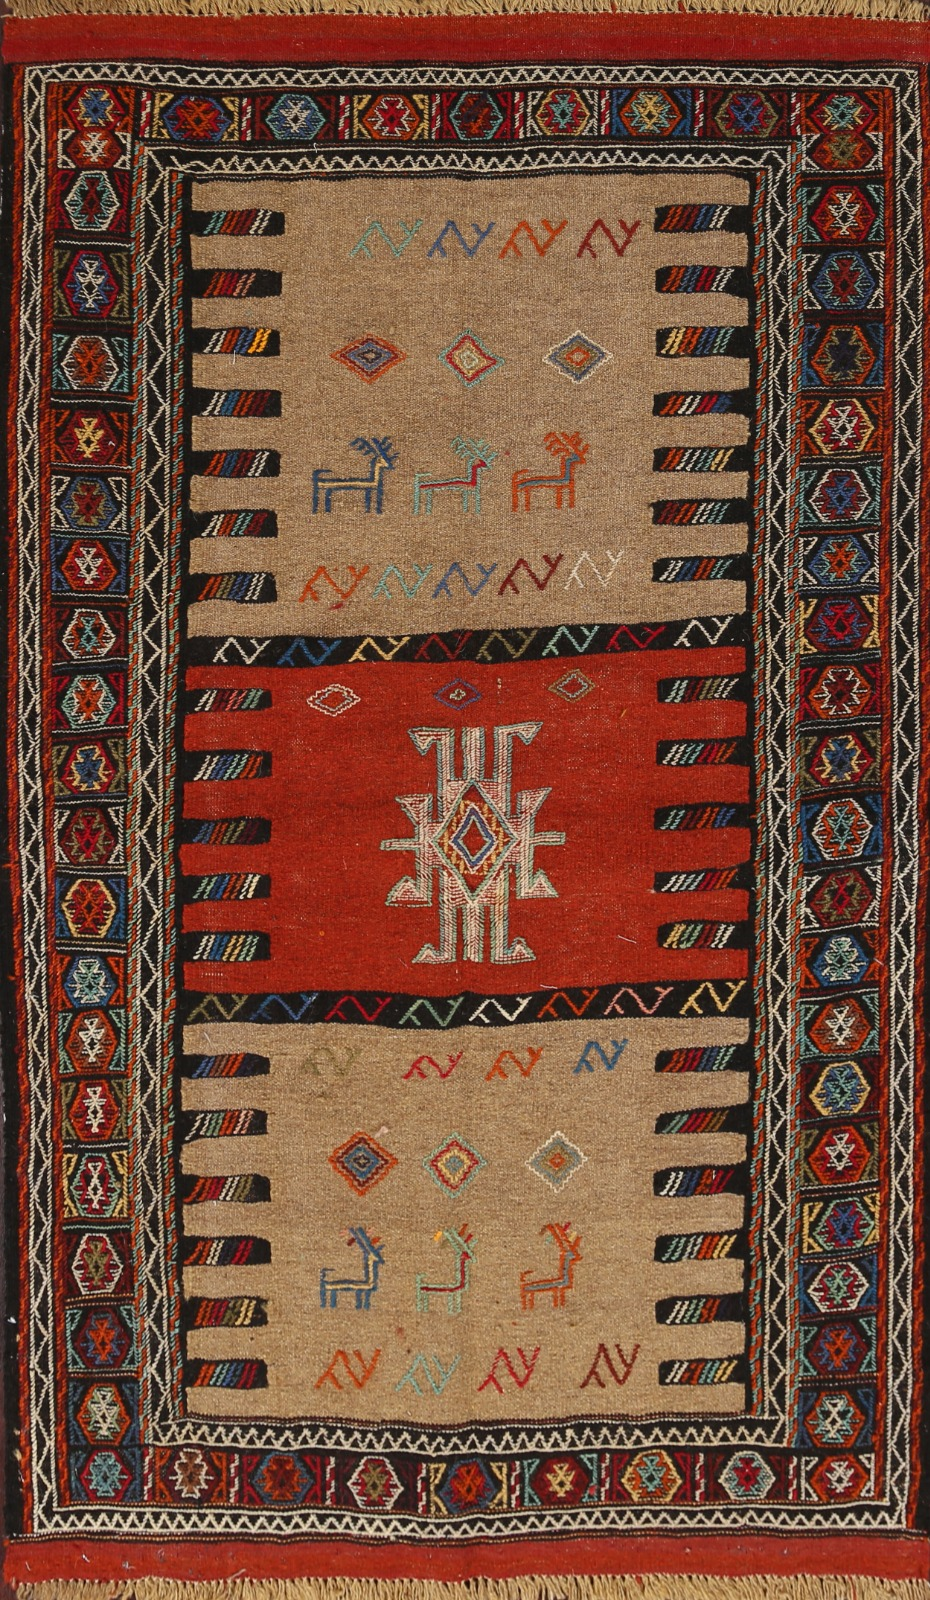 Brown Rust Geometric Kilim Hand Woven Oriental Area Rug For Living Room 4x6 Ft Ebay